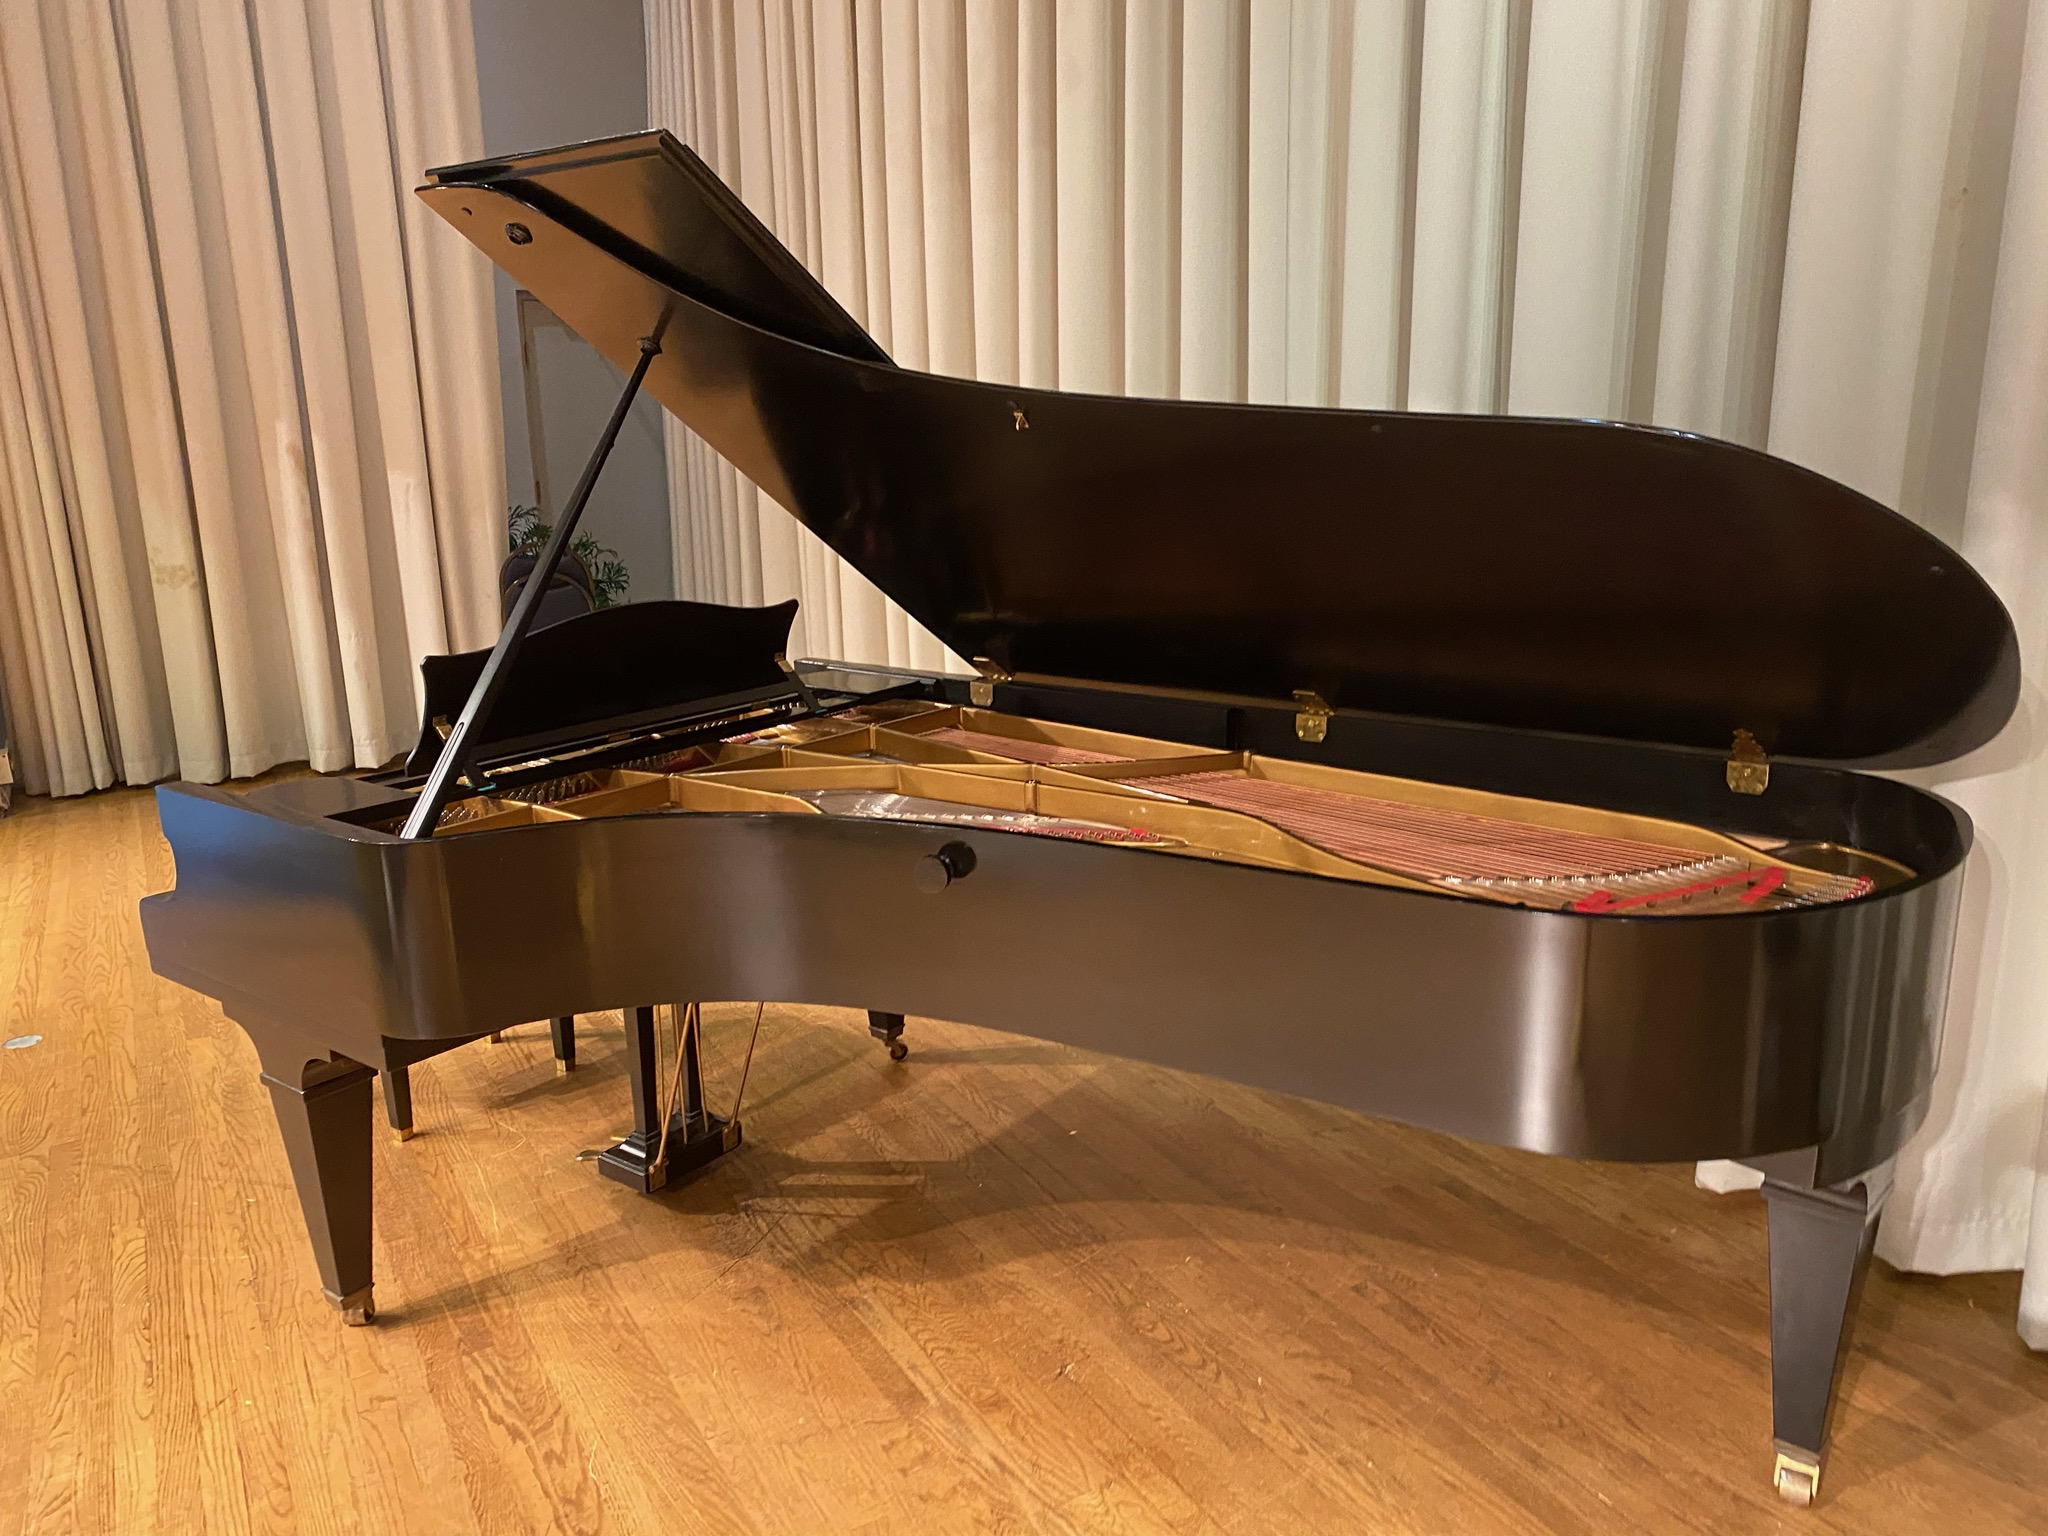 Beth El's bechstein piano (Courtesy of Ellen Marks)